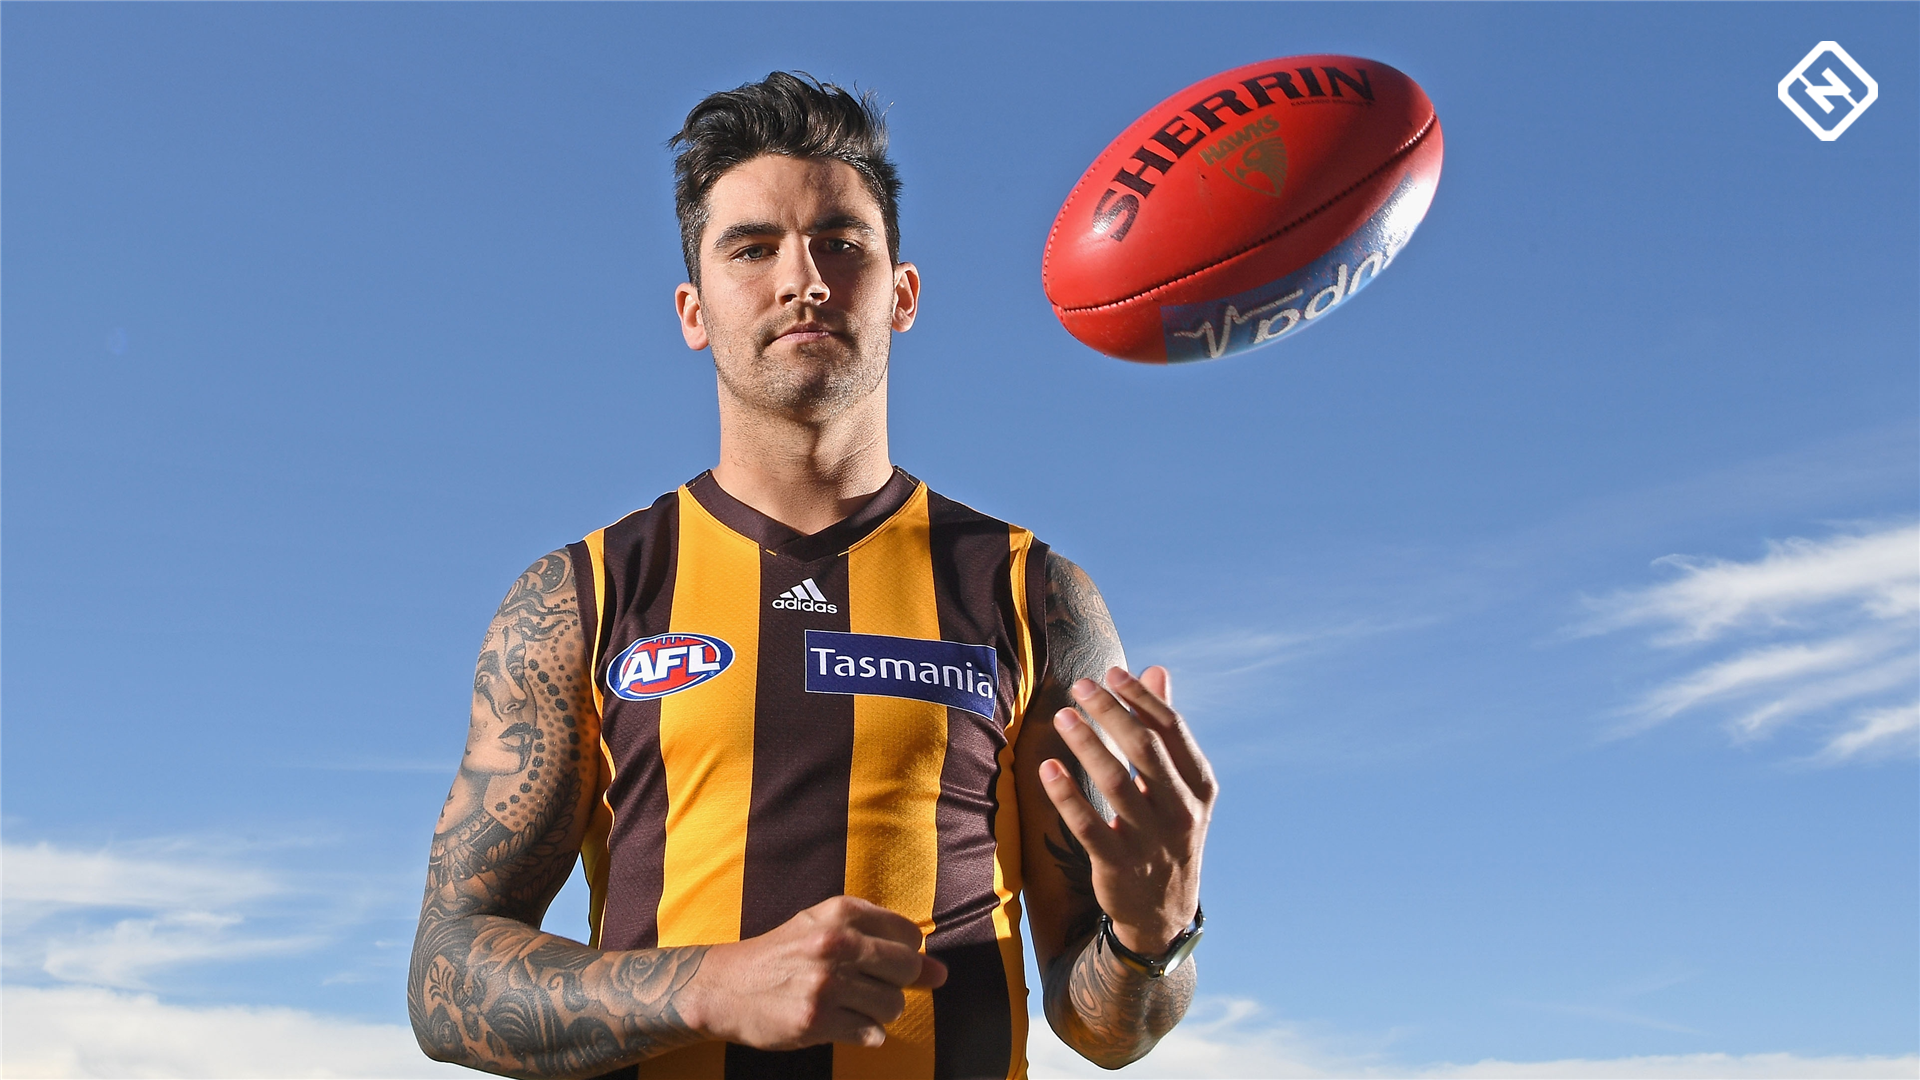 Hawthorn Hawks' list for 2019 after AFL trade and draft periods